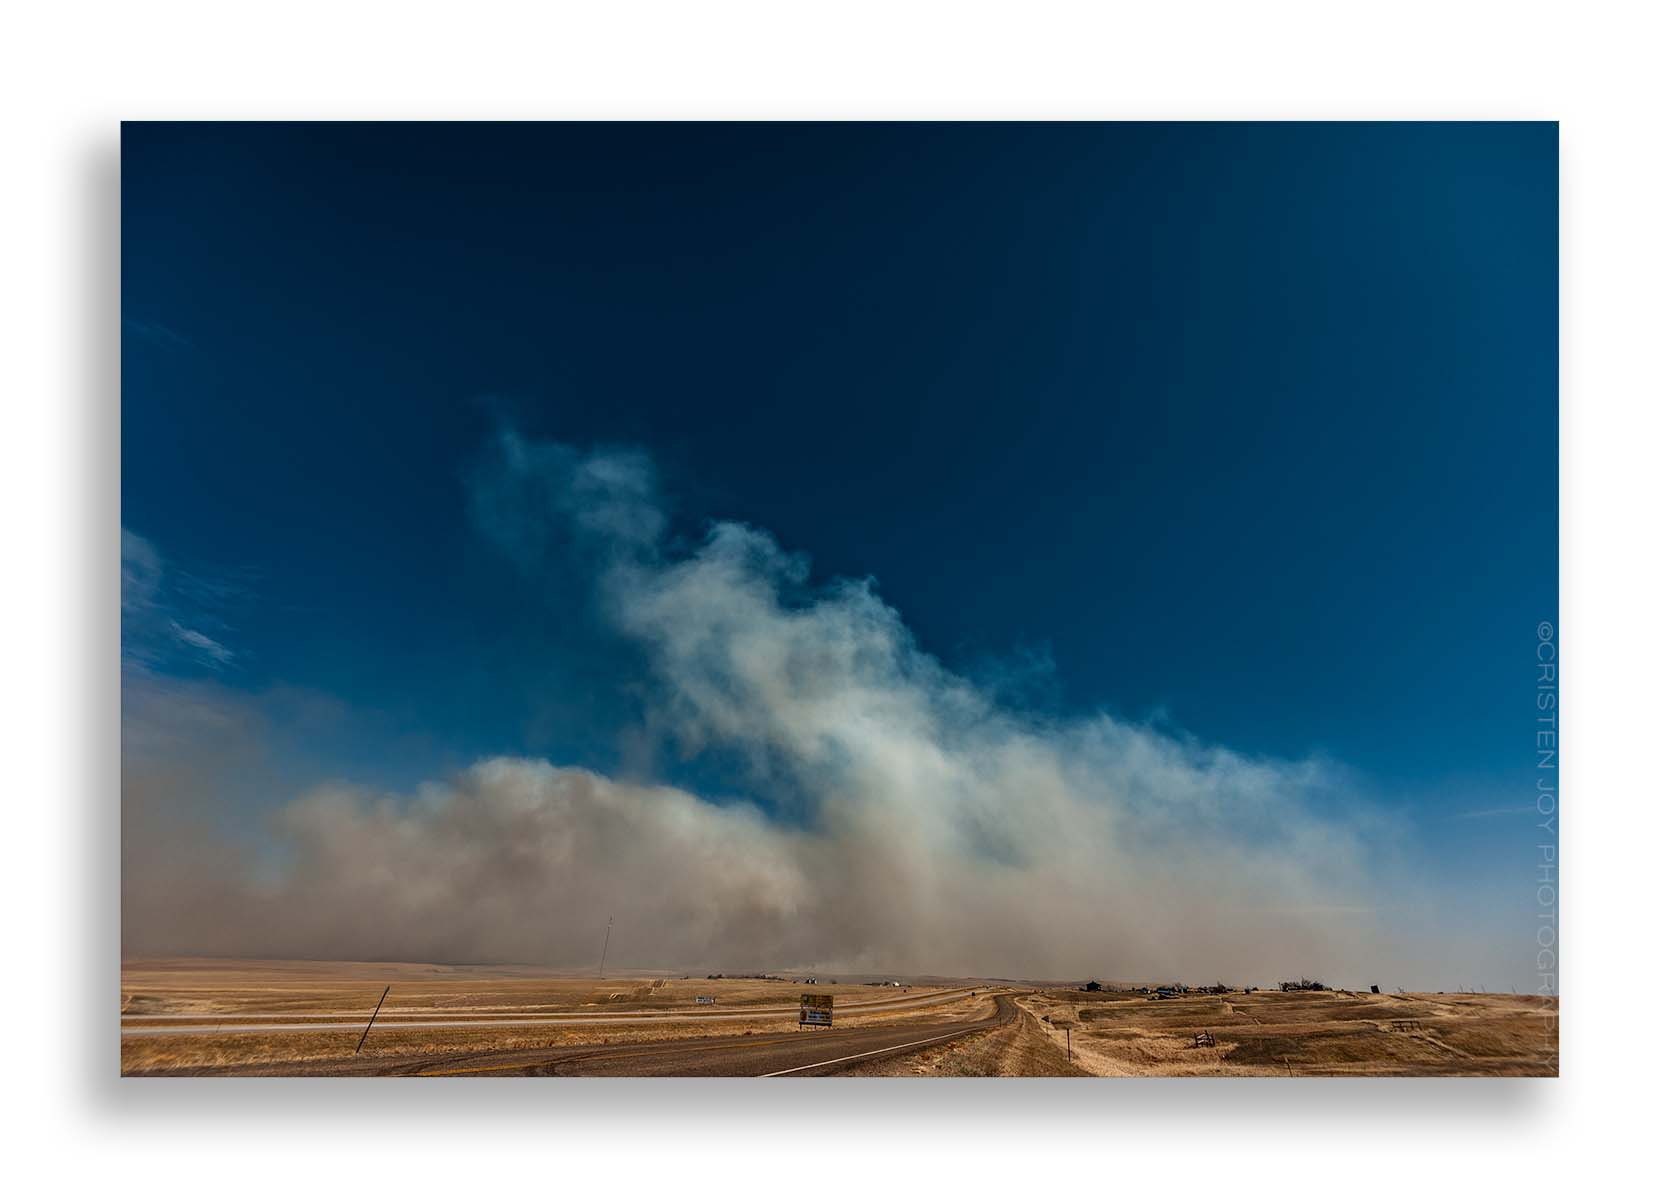 Dry Creek Fire | Okaton, SD | 3.29.21